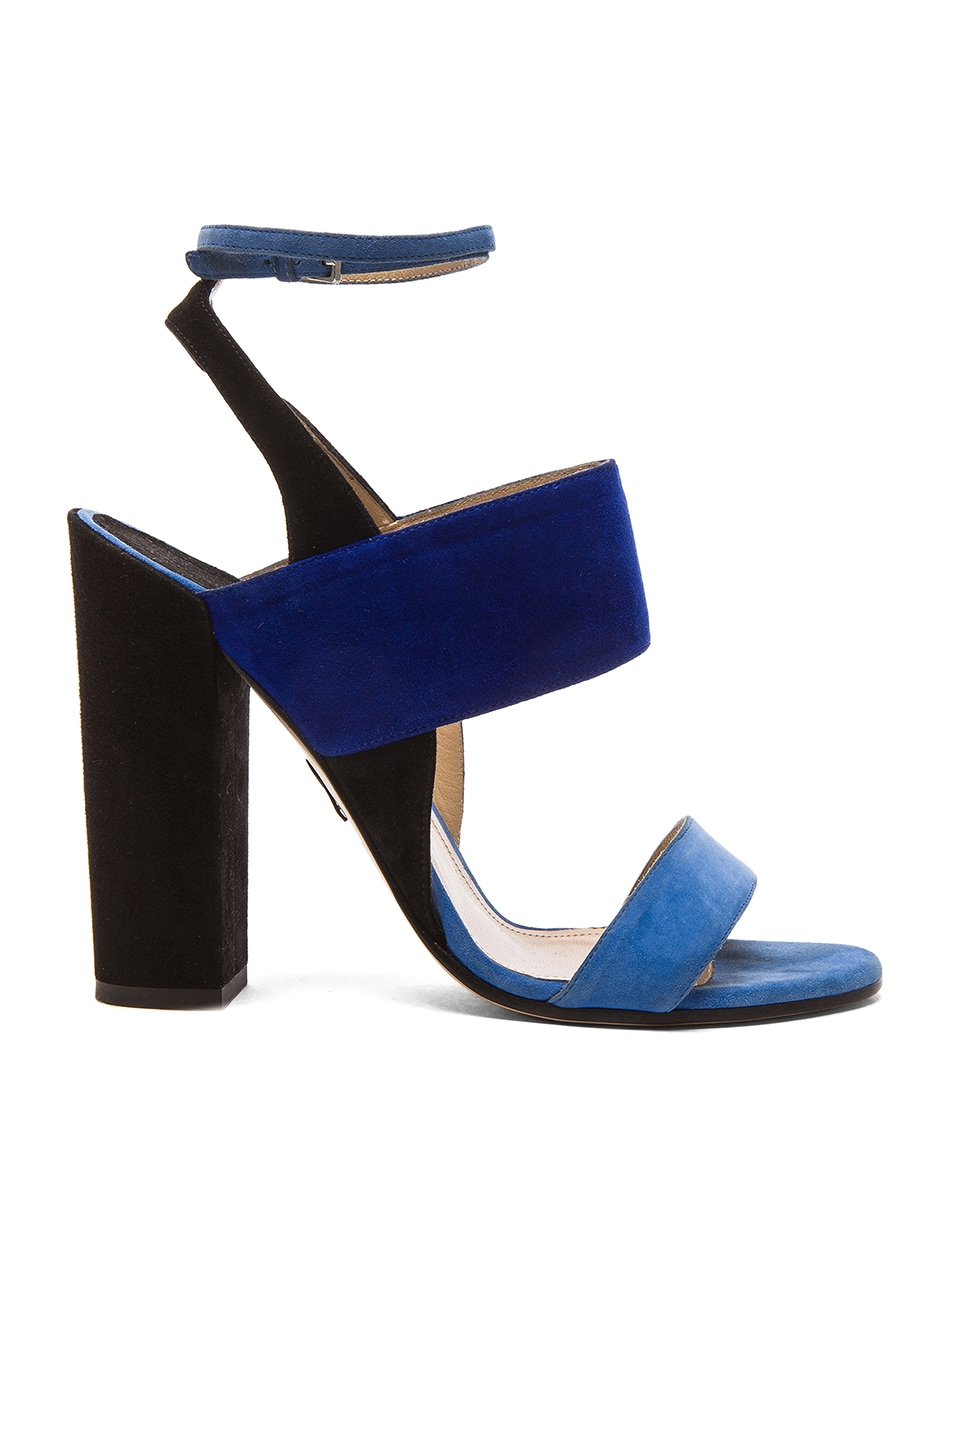 Image 1 of Paul Andrew Xiamen Heel in Wedgewood Blue